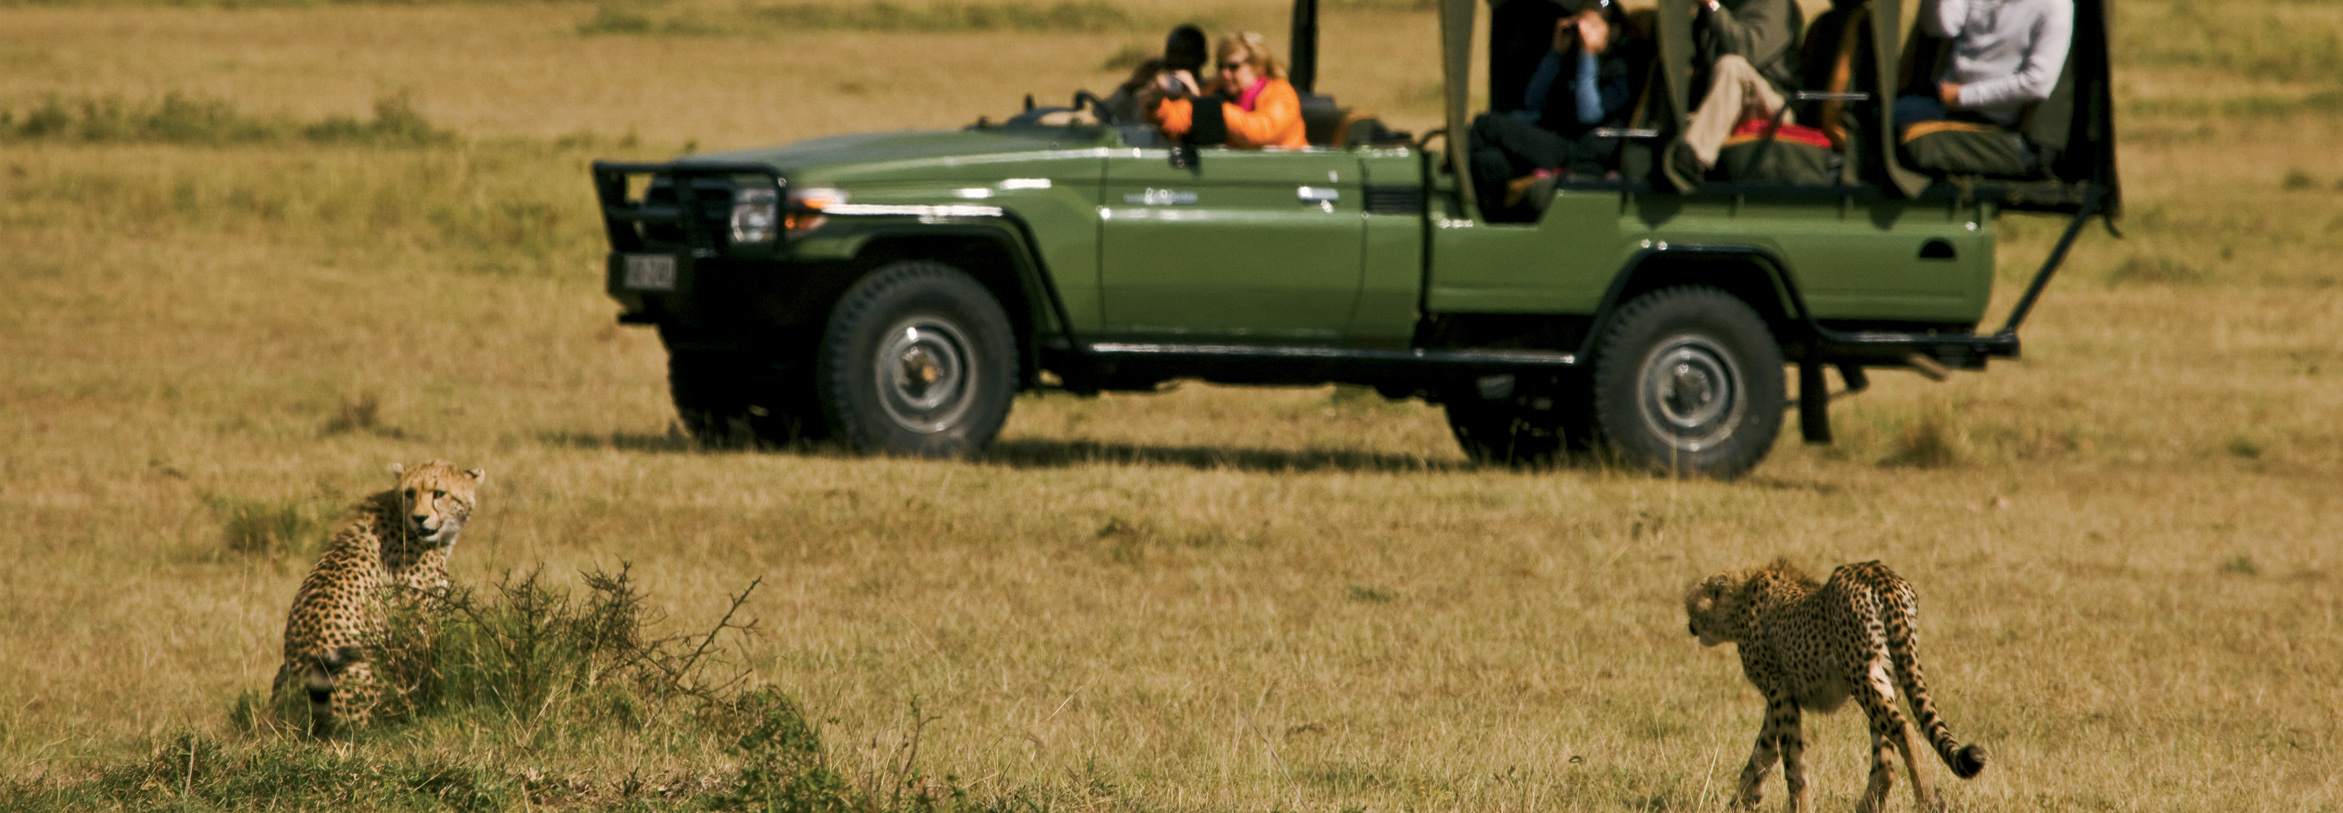 Mara Expedition Camp - Masai Mara Luxury Safari - Ker & Downey